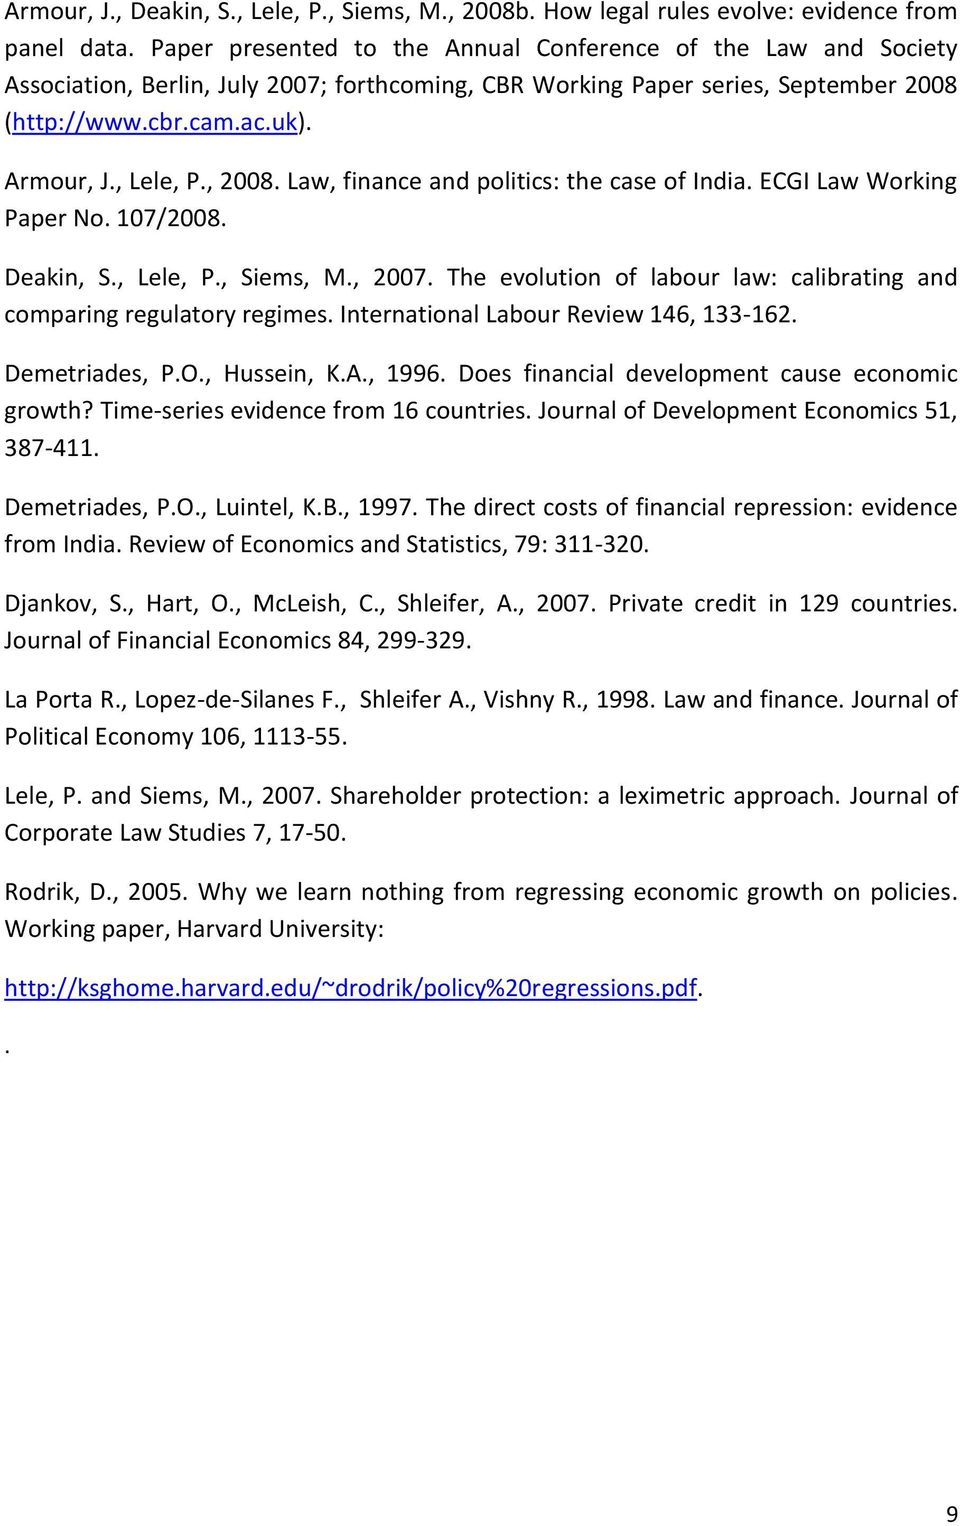 , 2008. Law, finance and politics: the case of India. ECGI Law Working Paper No. 107/2008. Deakin, S., Lele, P., Siems, M., 2007.